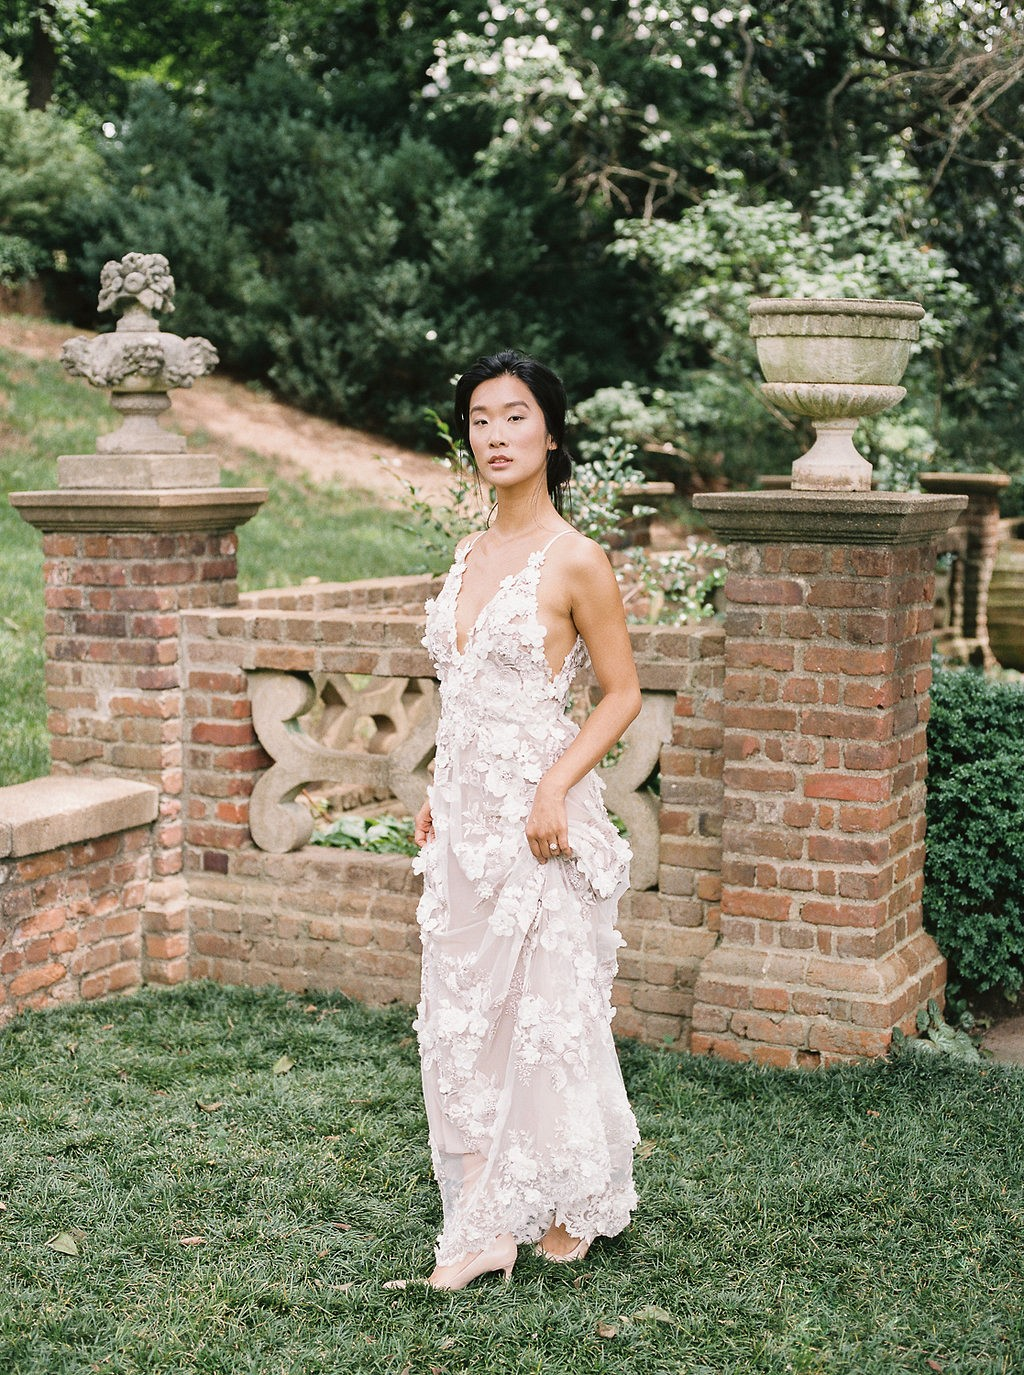 Romantic Estate Wedding Inspiration with a Floral Wedding Gown